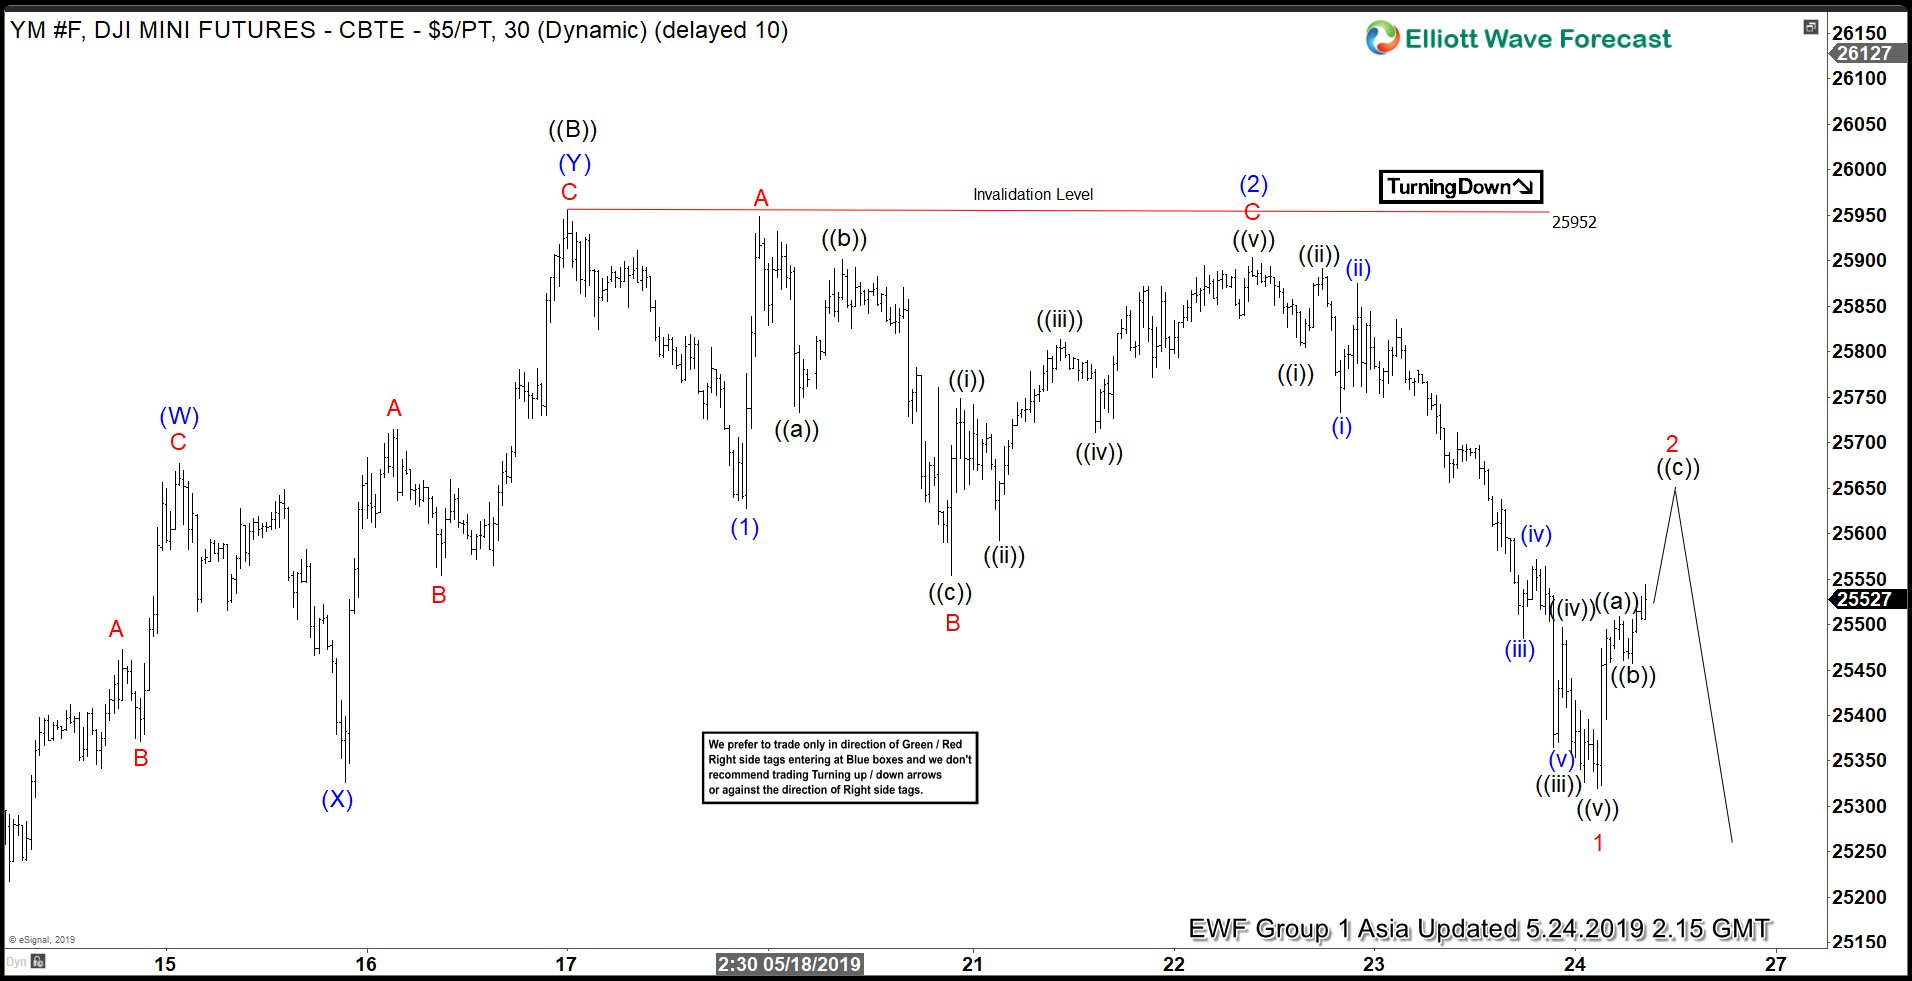 Elliott Wave View: Dow Jones Future YM_F Rally Should Fail